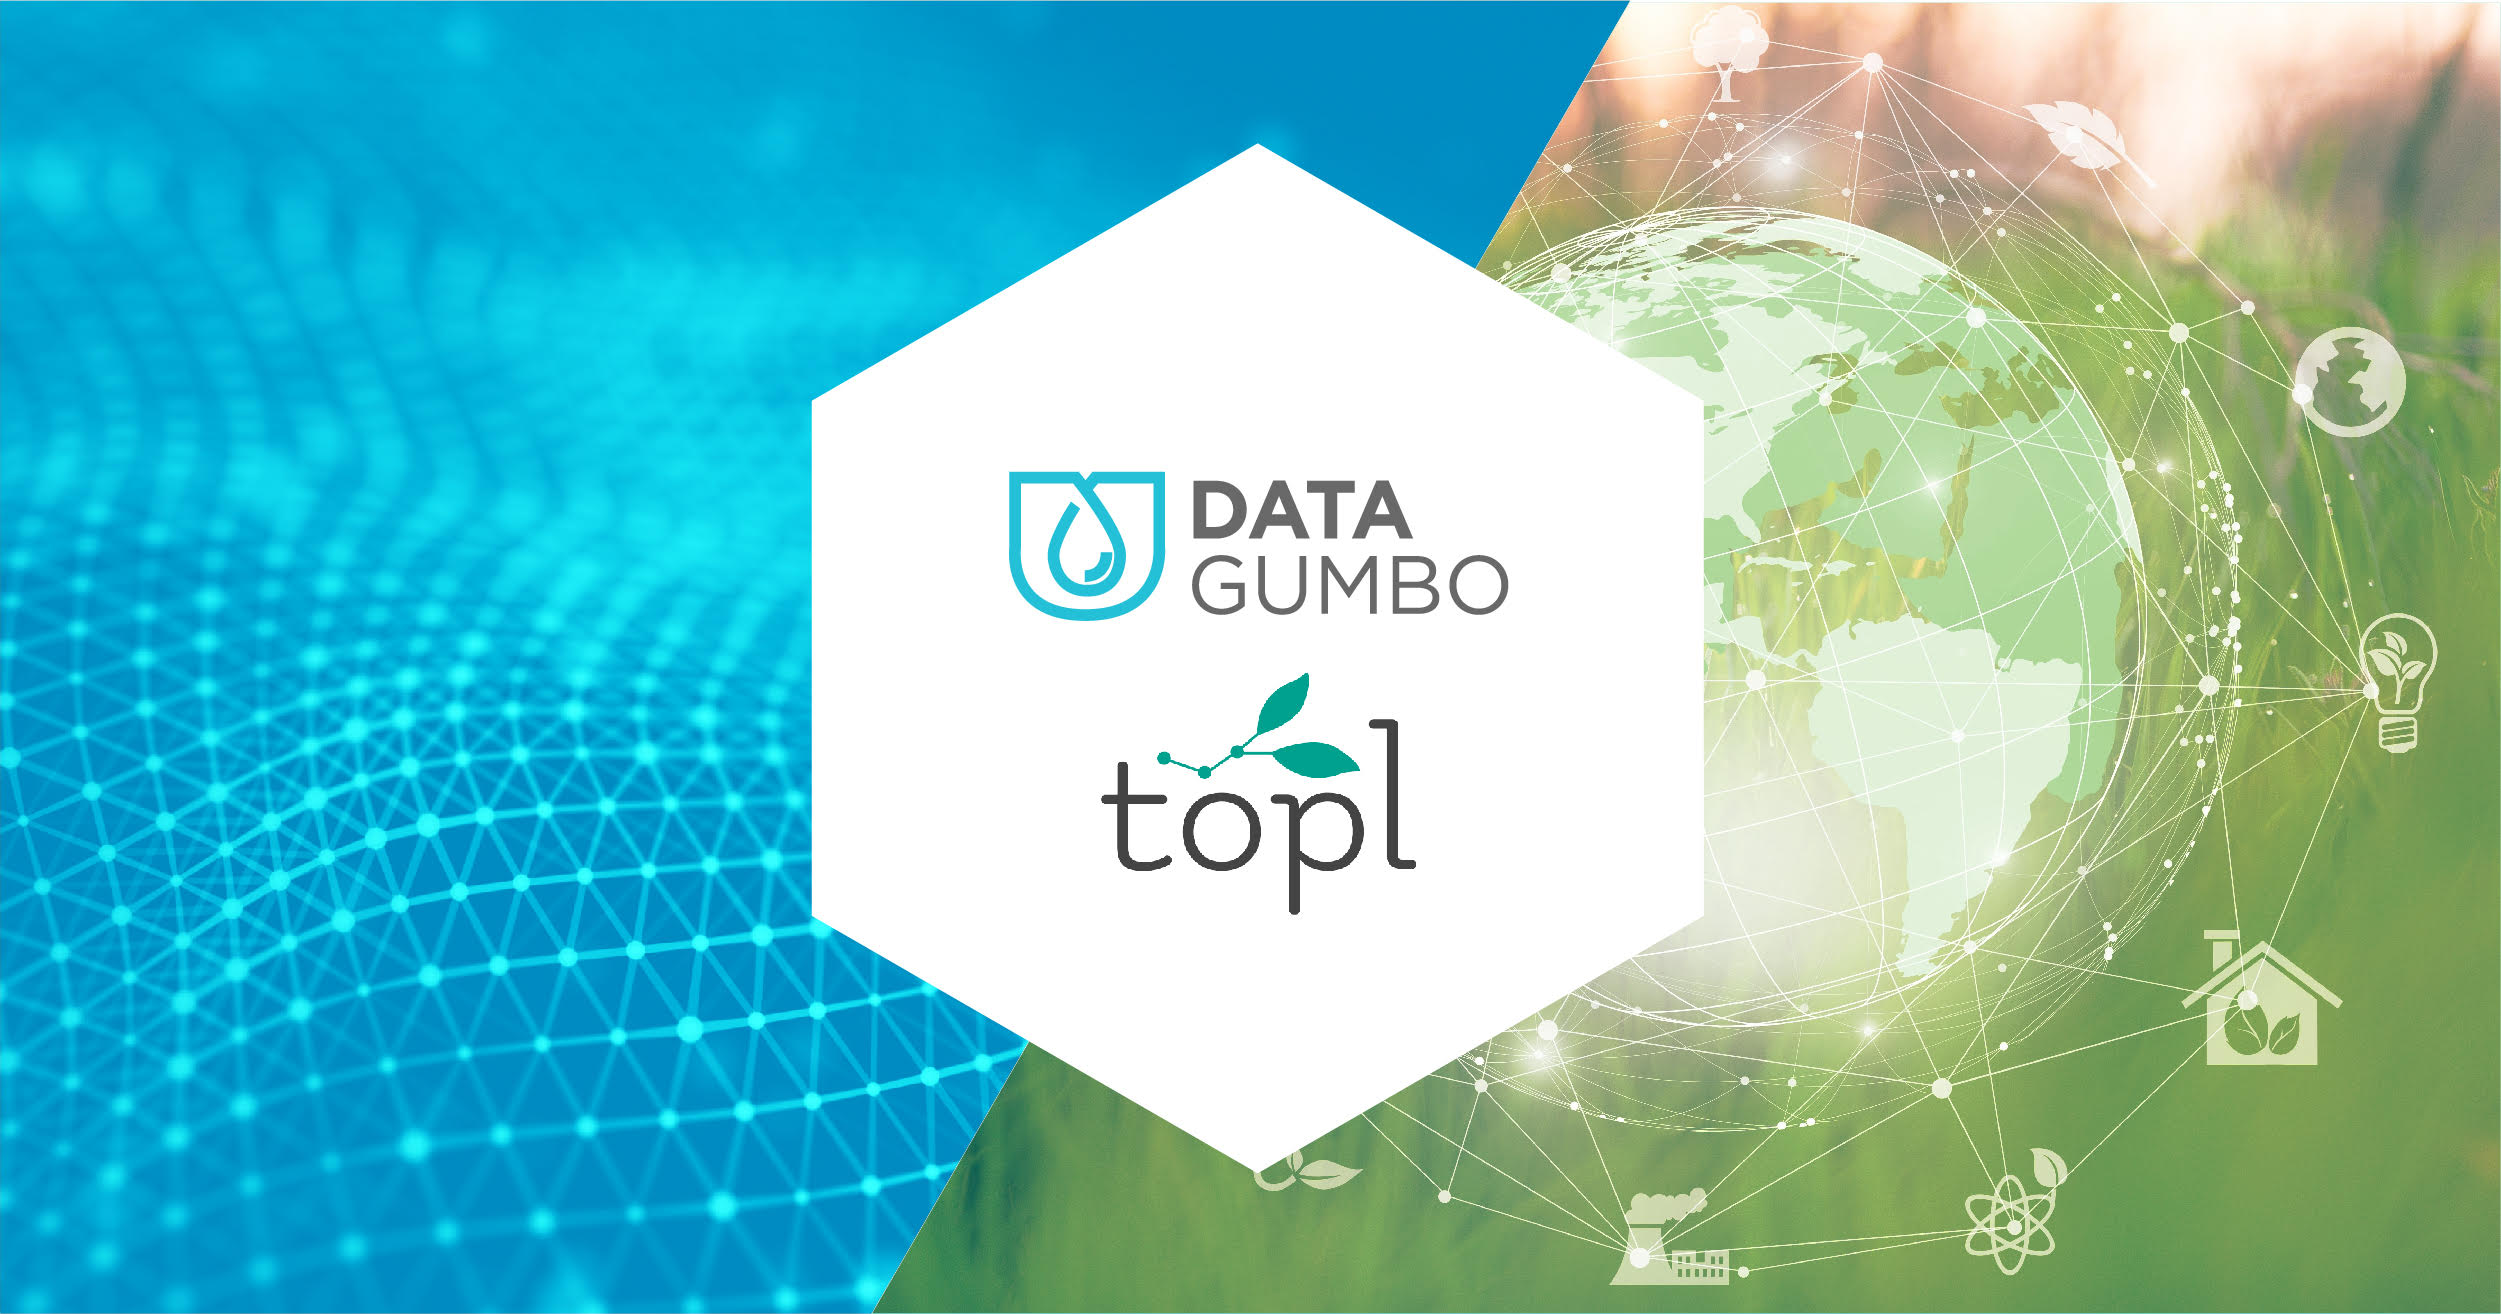 Data Gumbo and Topl Partner for Automated, Transparent ESG Reporting